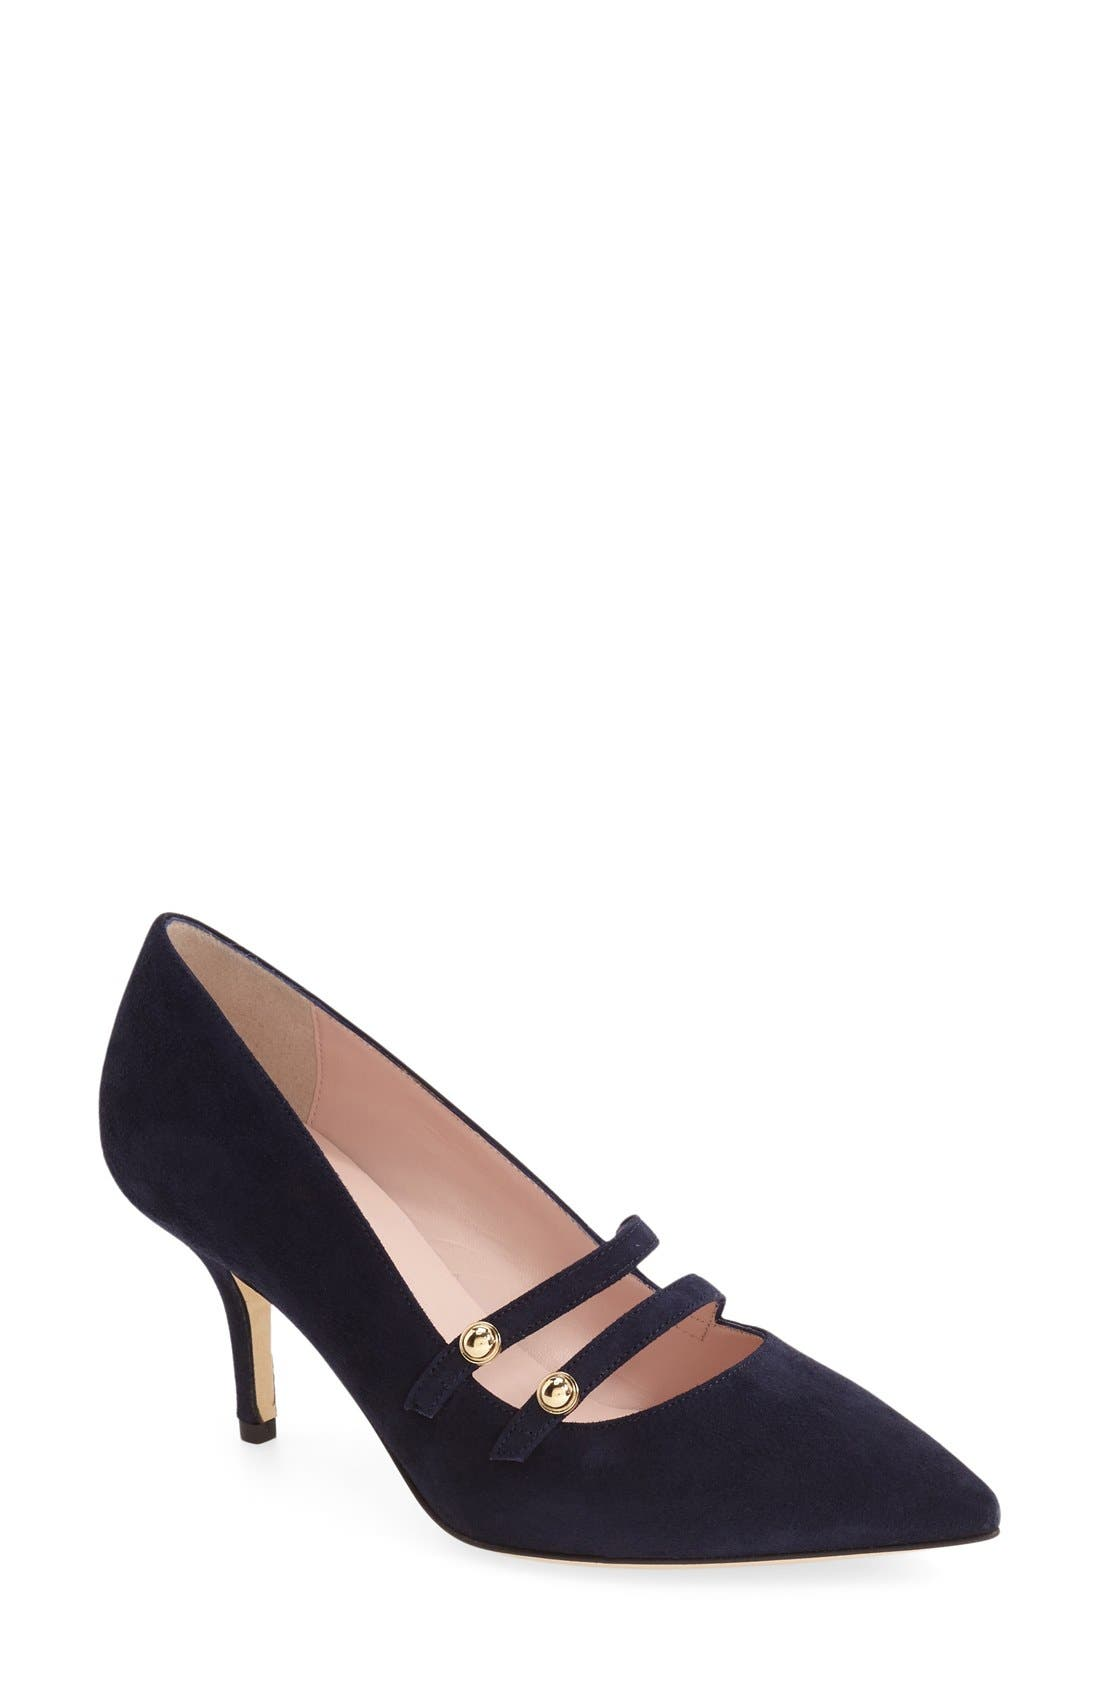 Main Image - kate spade new york 'jessica' pointy toe pump (Women)